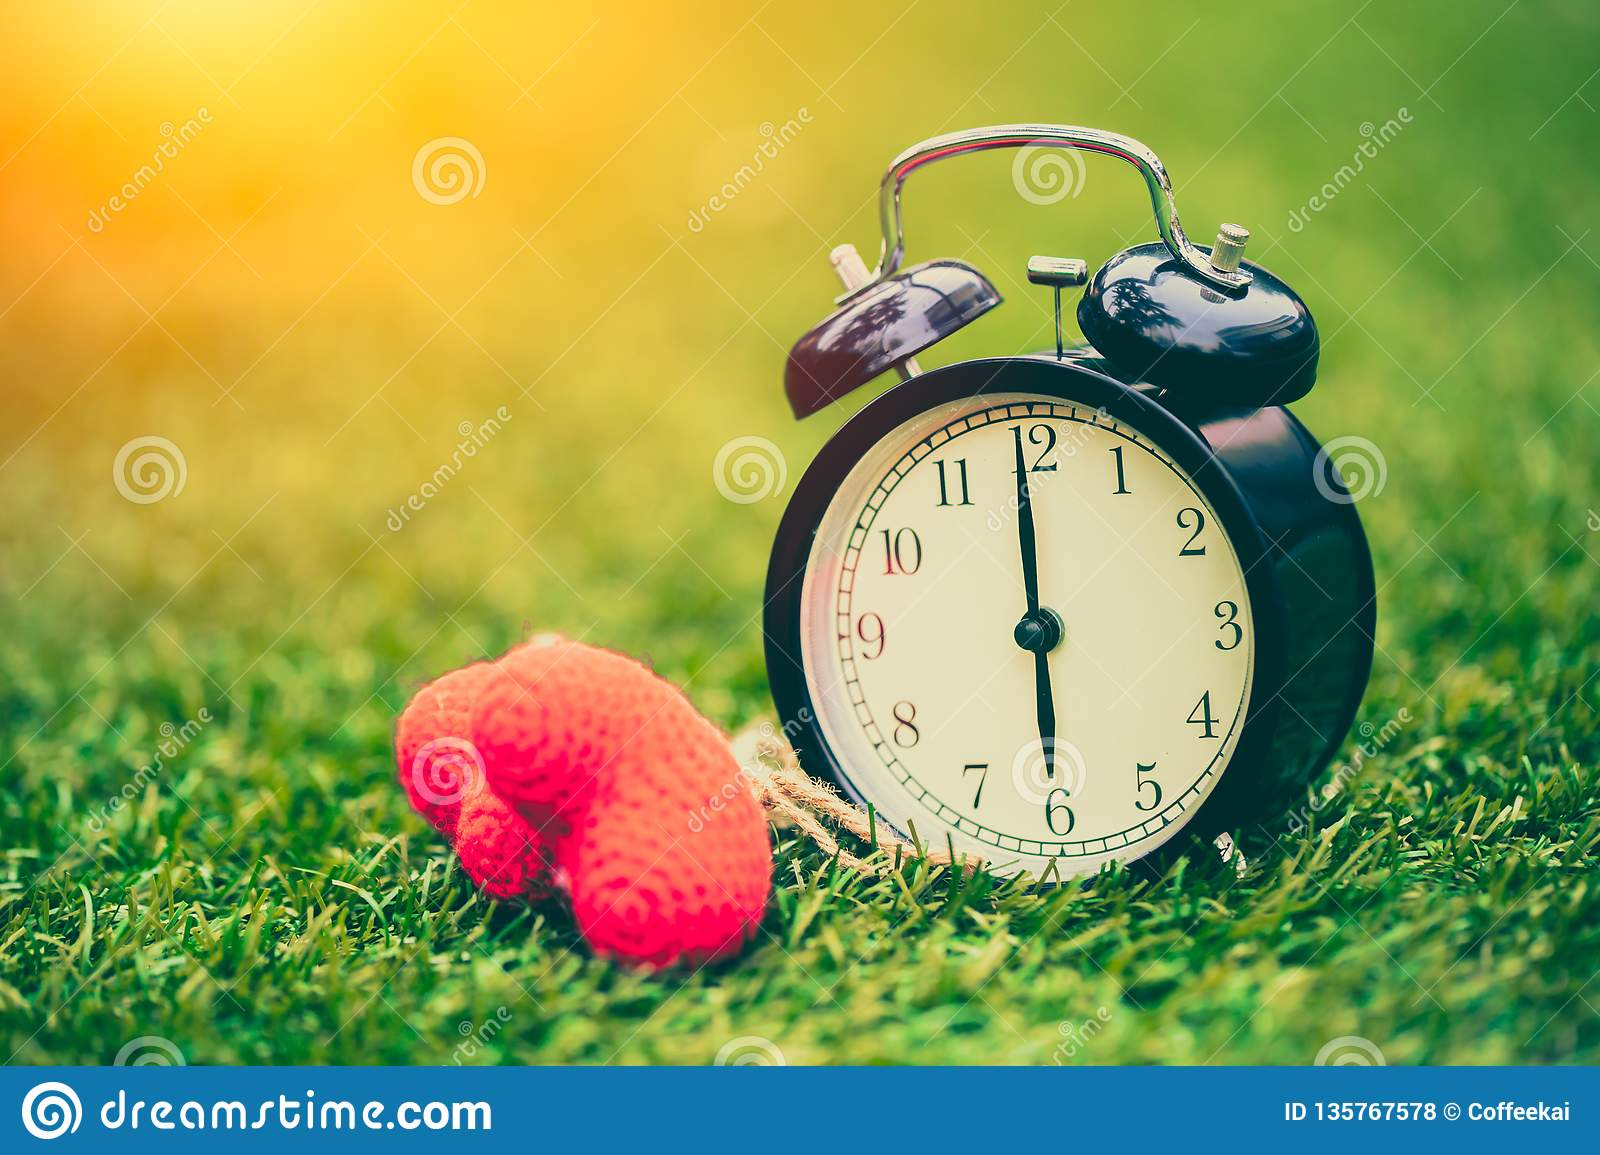 Vintage old clock on the green grass with heart love times memory concept